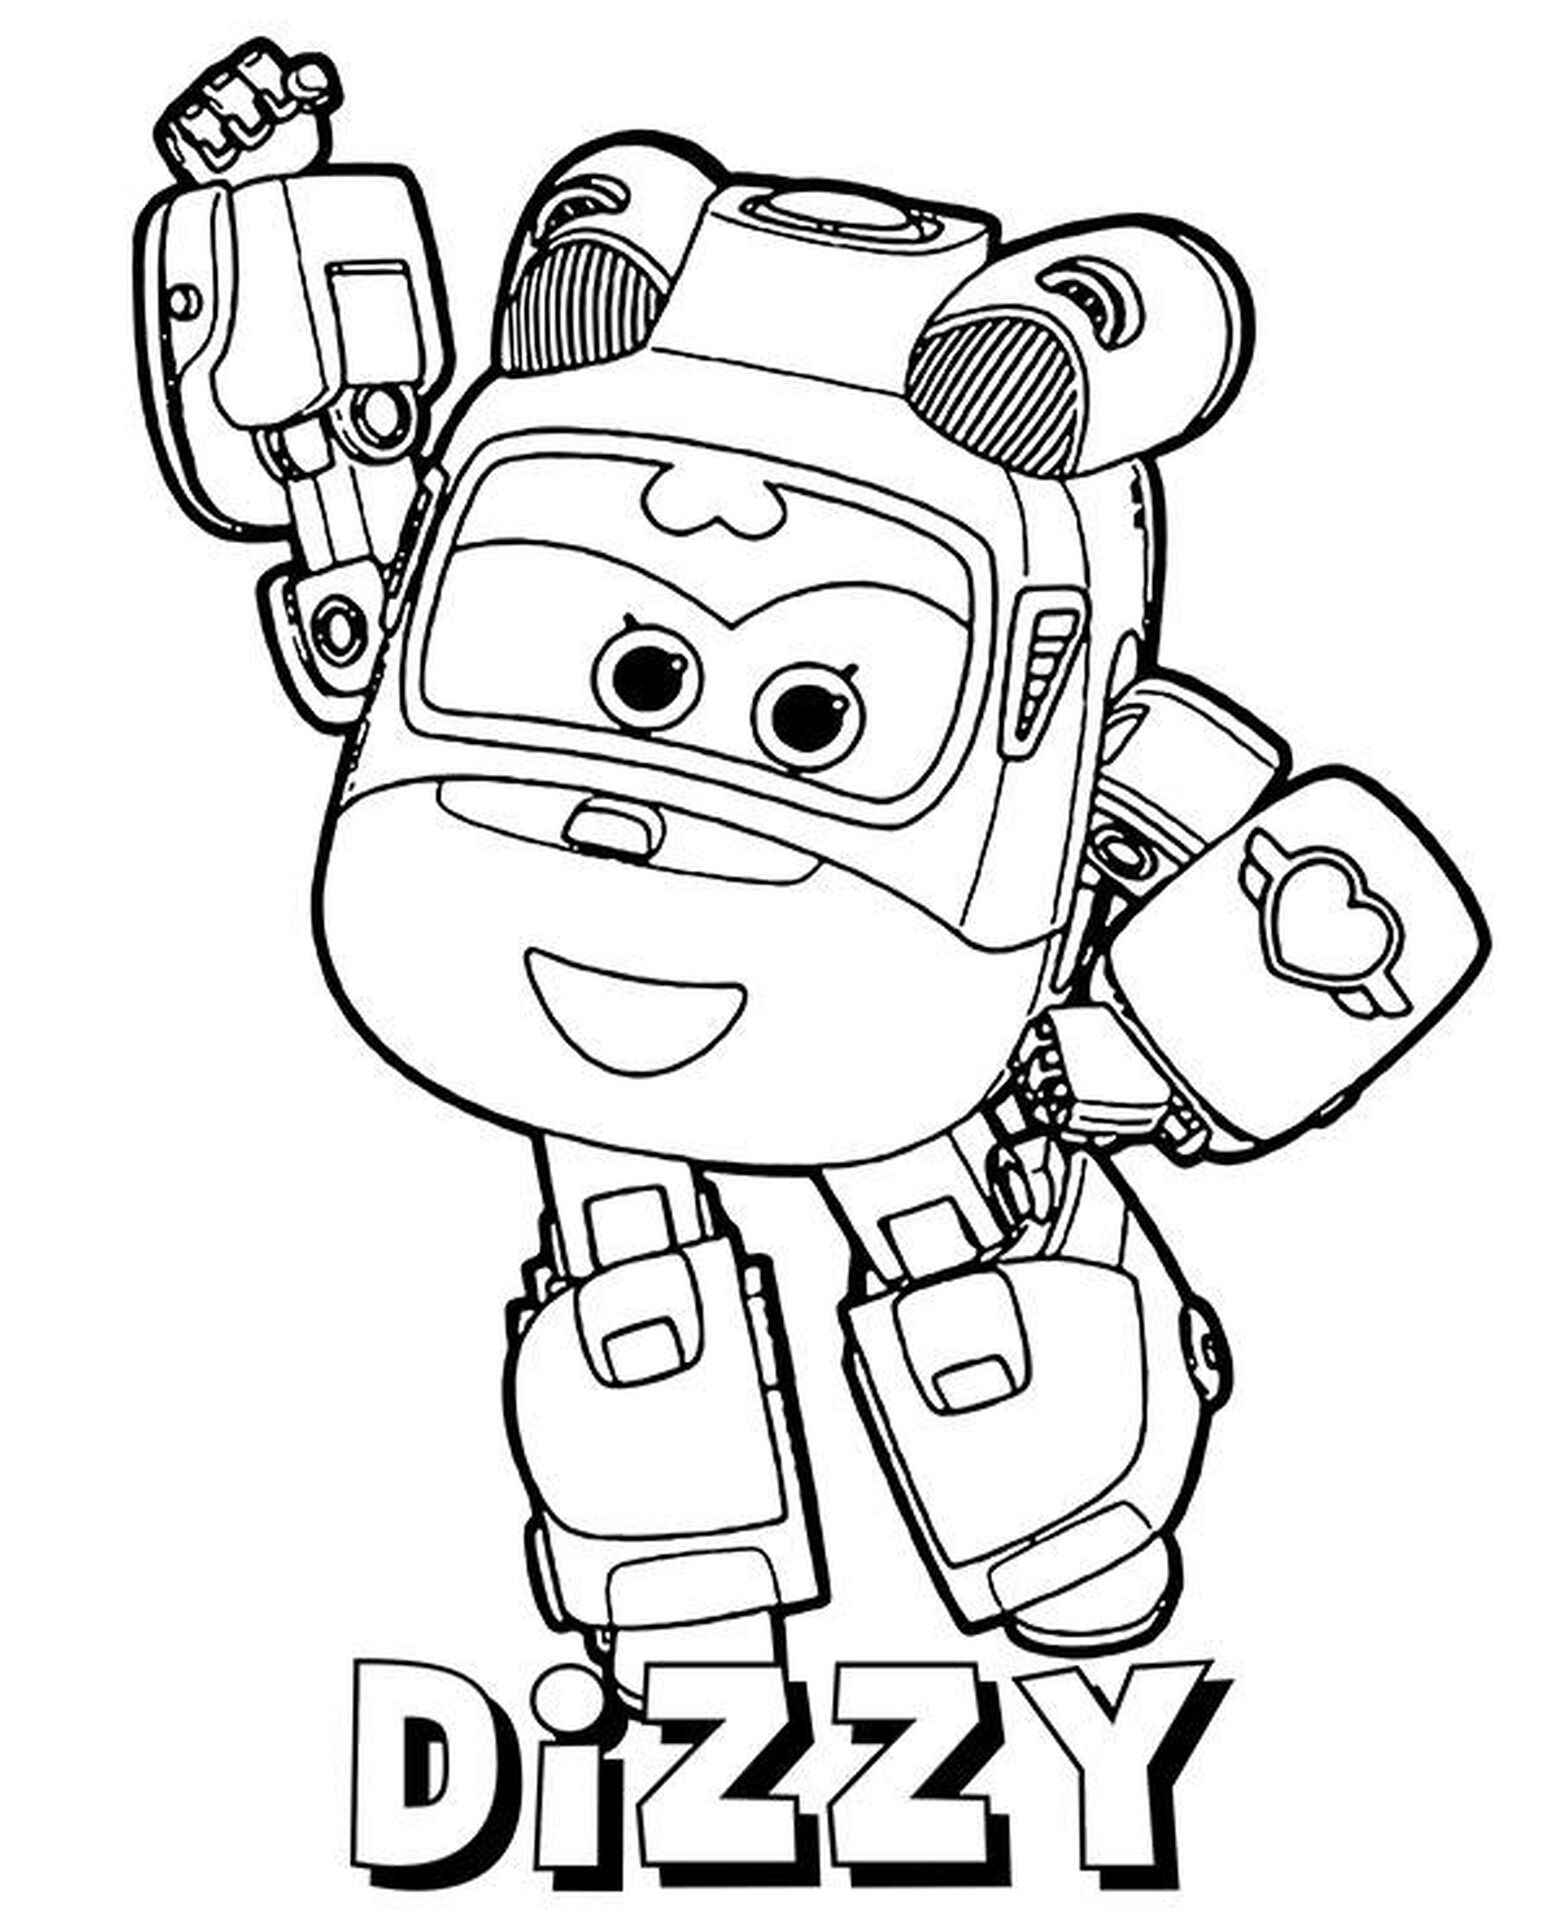 Dizzy Coloring Page